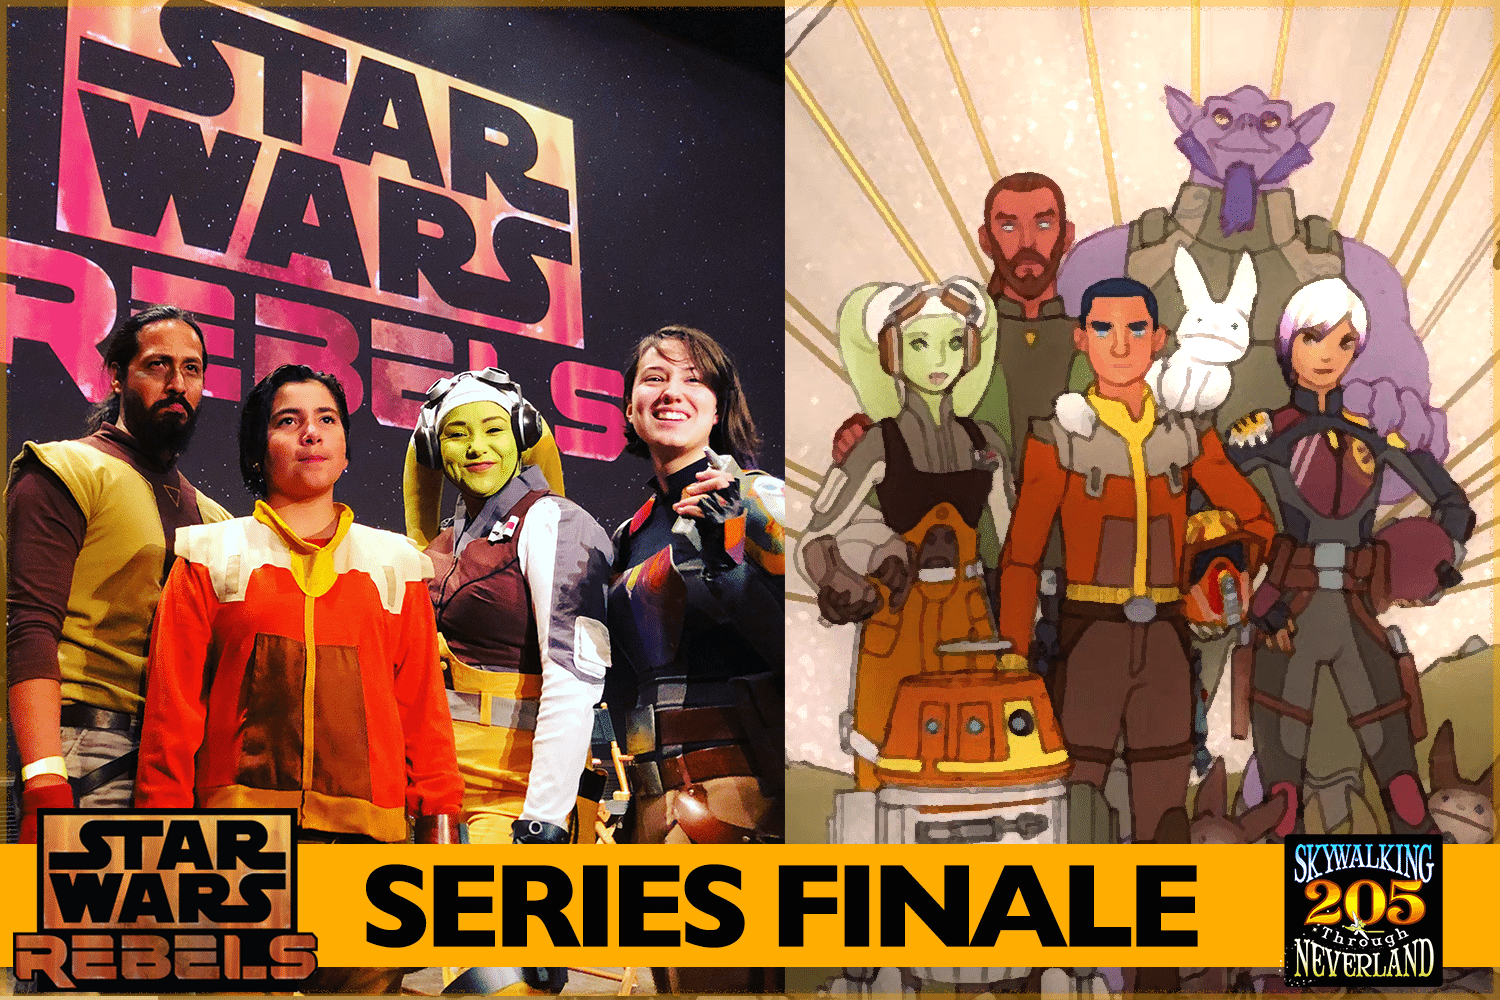 Skywalking Through Neverland #205: Star Wars Rebels Series Finale